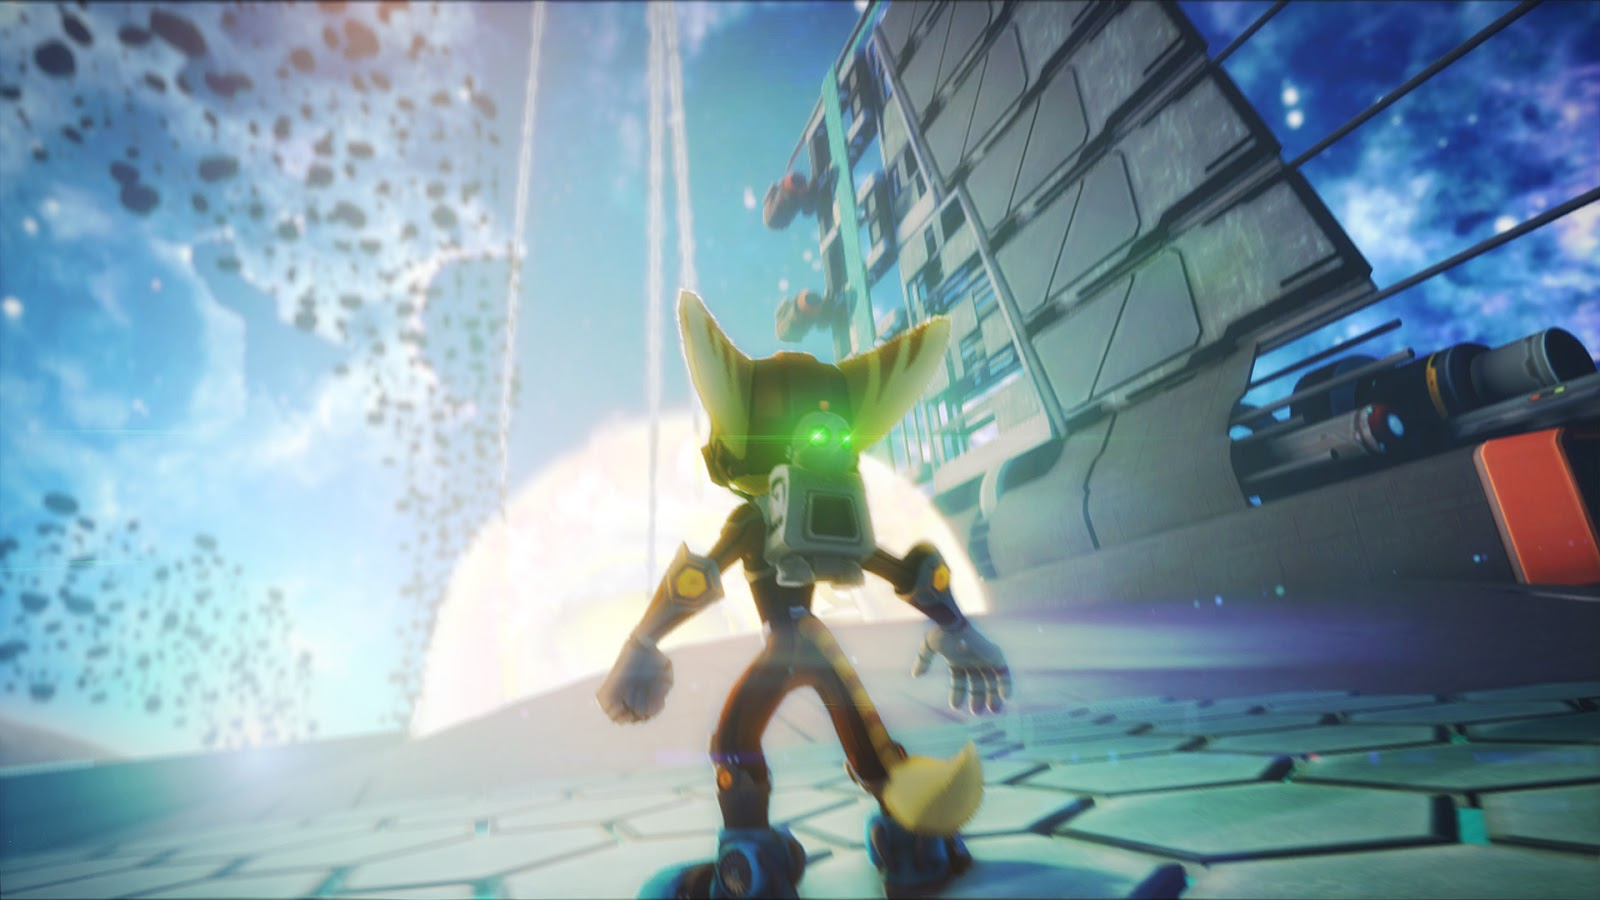 Ratchet And Clank Into The Nexus Wallpapers in 1080P HD  - ratchet and clank into the nexus game wallpapers